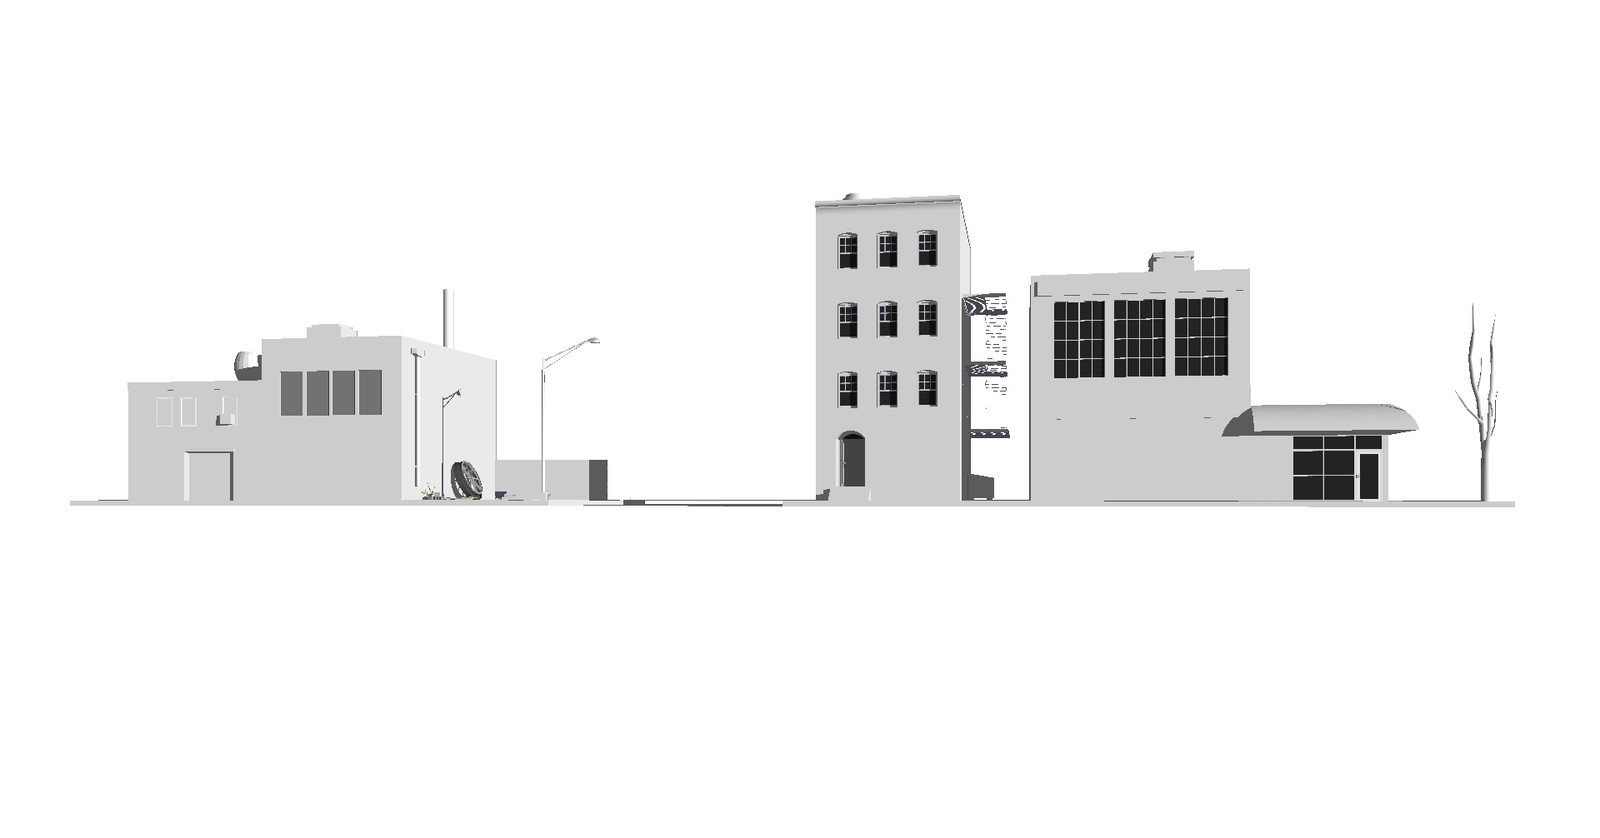 Old Sketchup scene - re-rendered in 2D and inverted to create foreground.